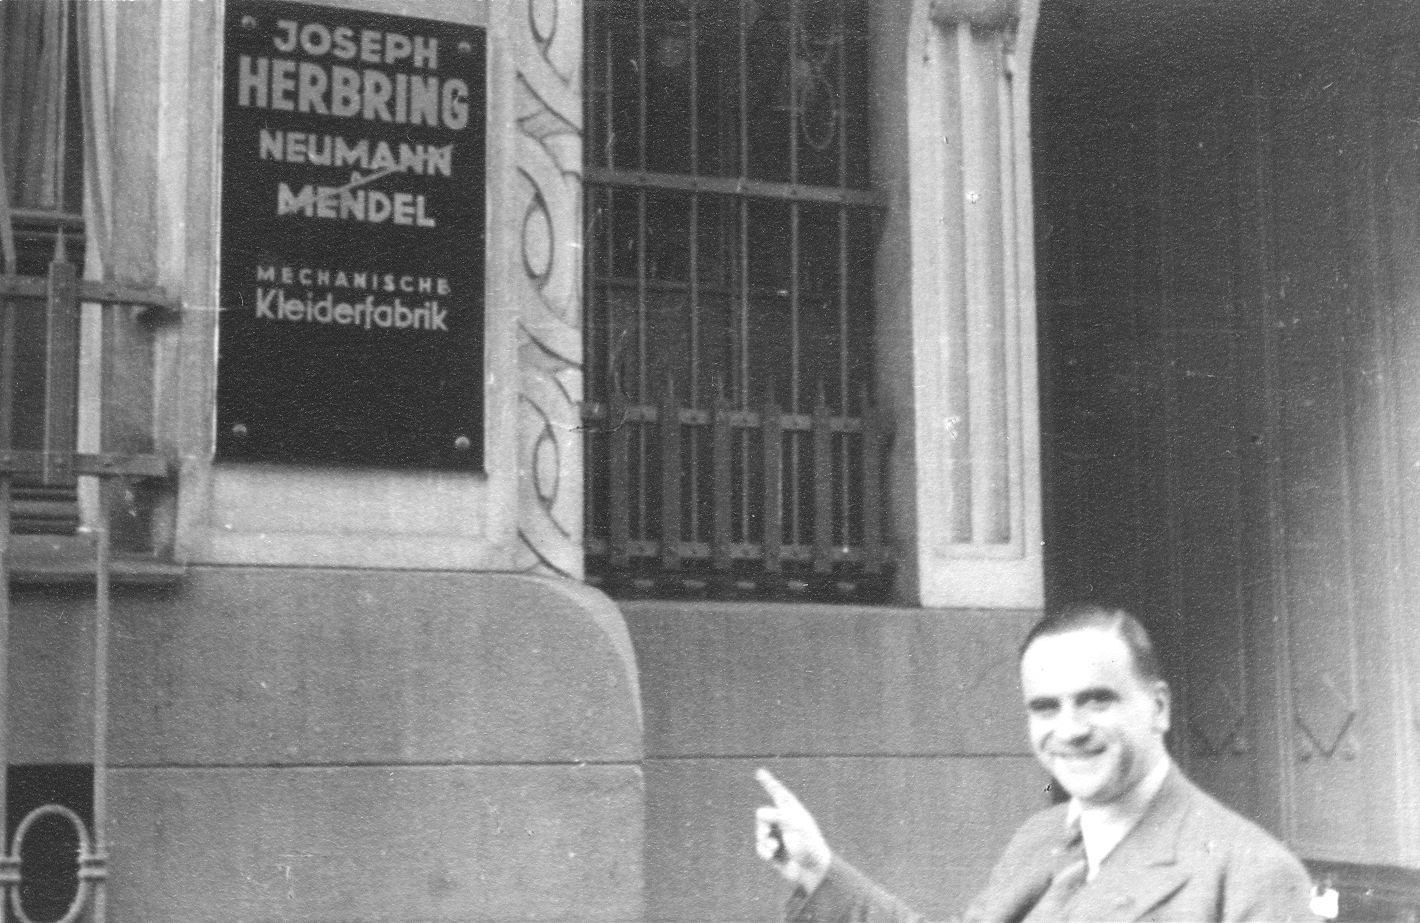 Ludwig Neumann pointing to the sign at the entrance of the Josep